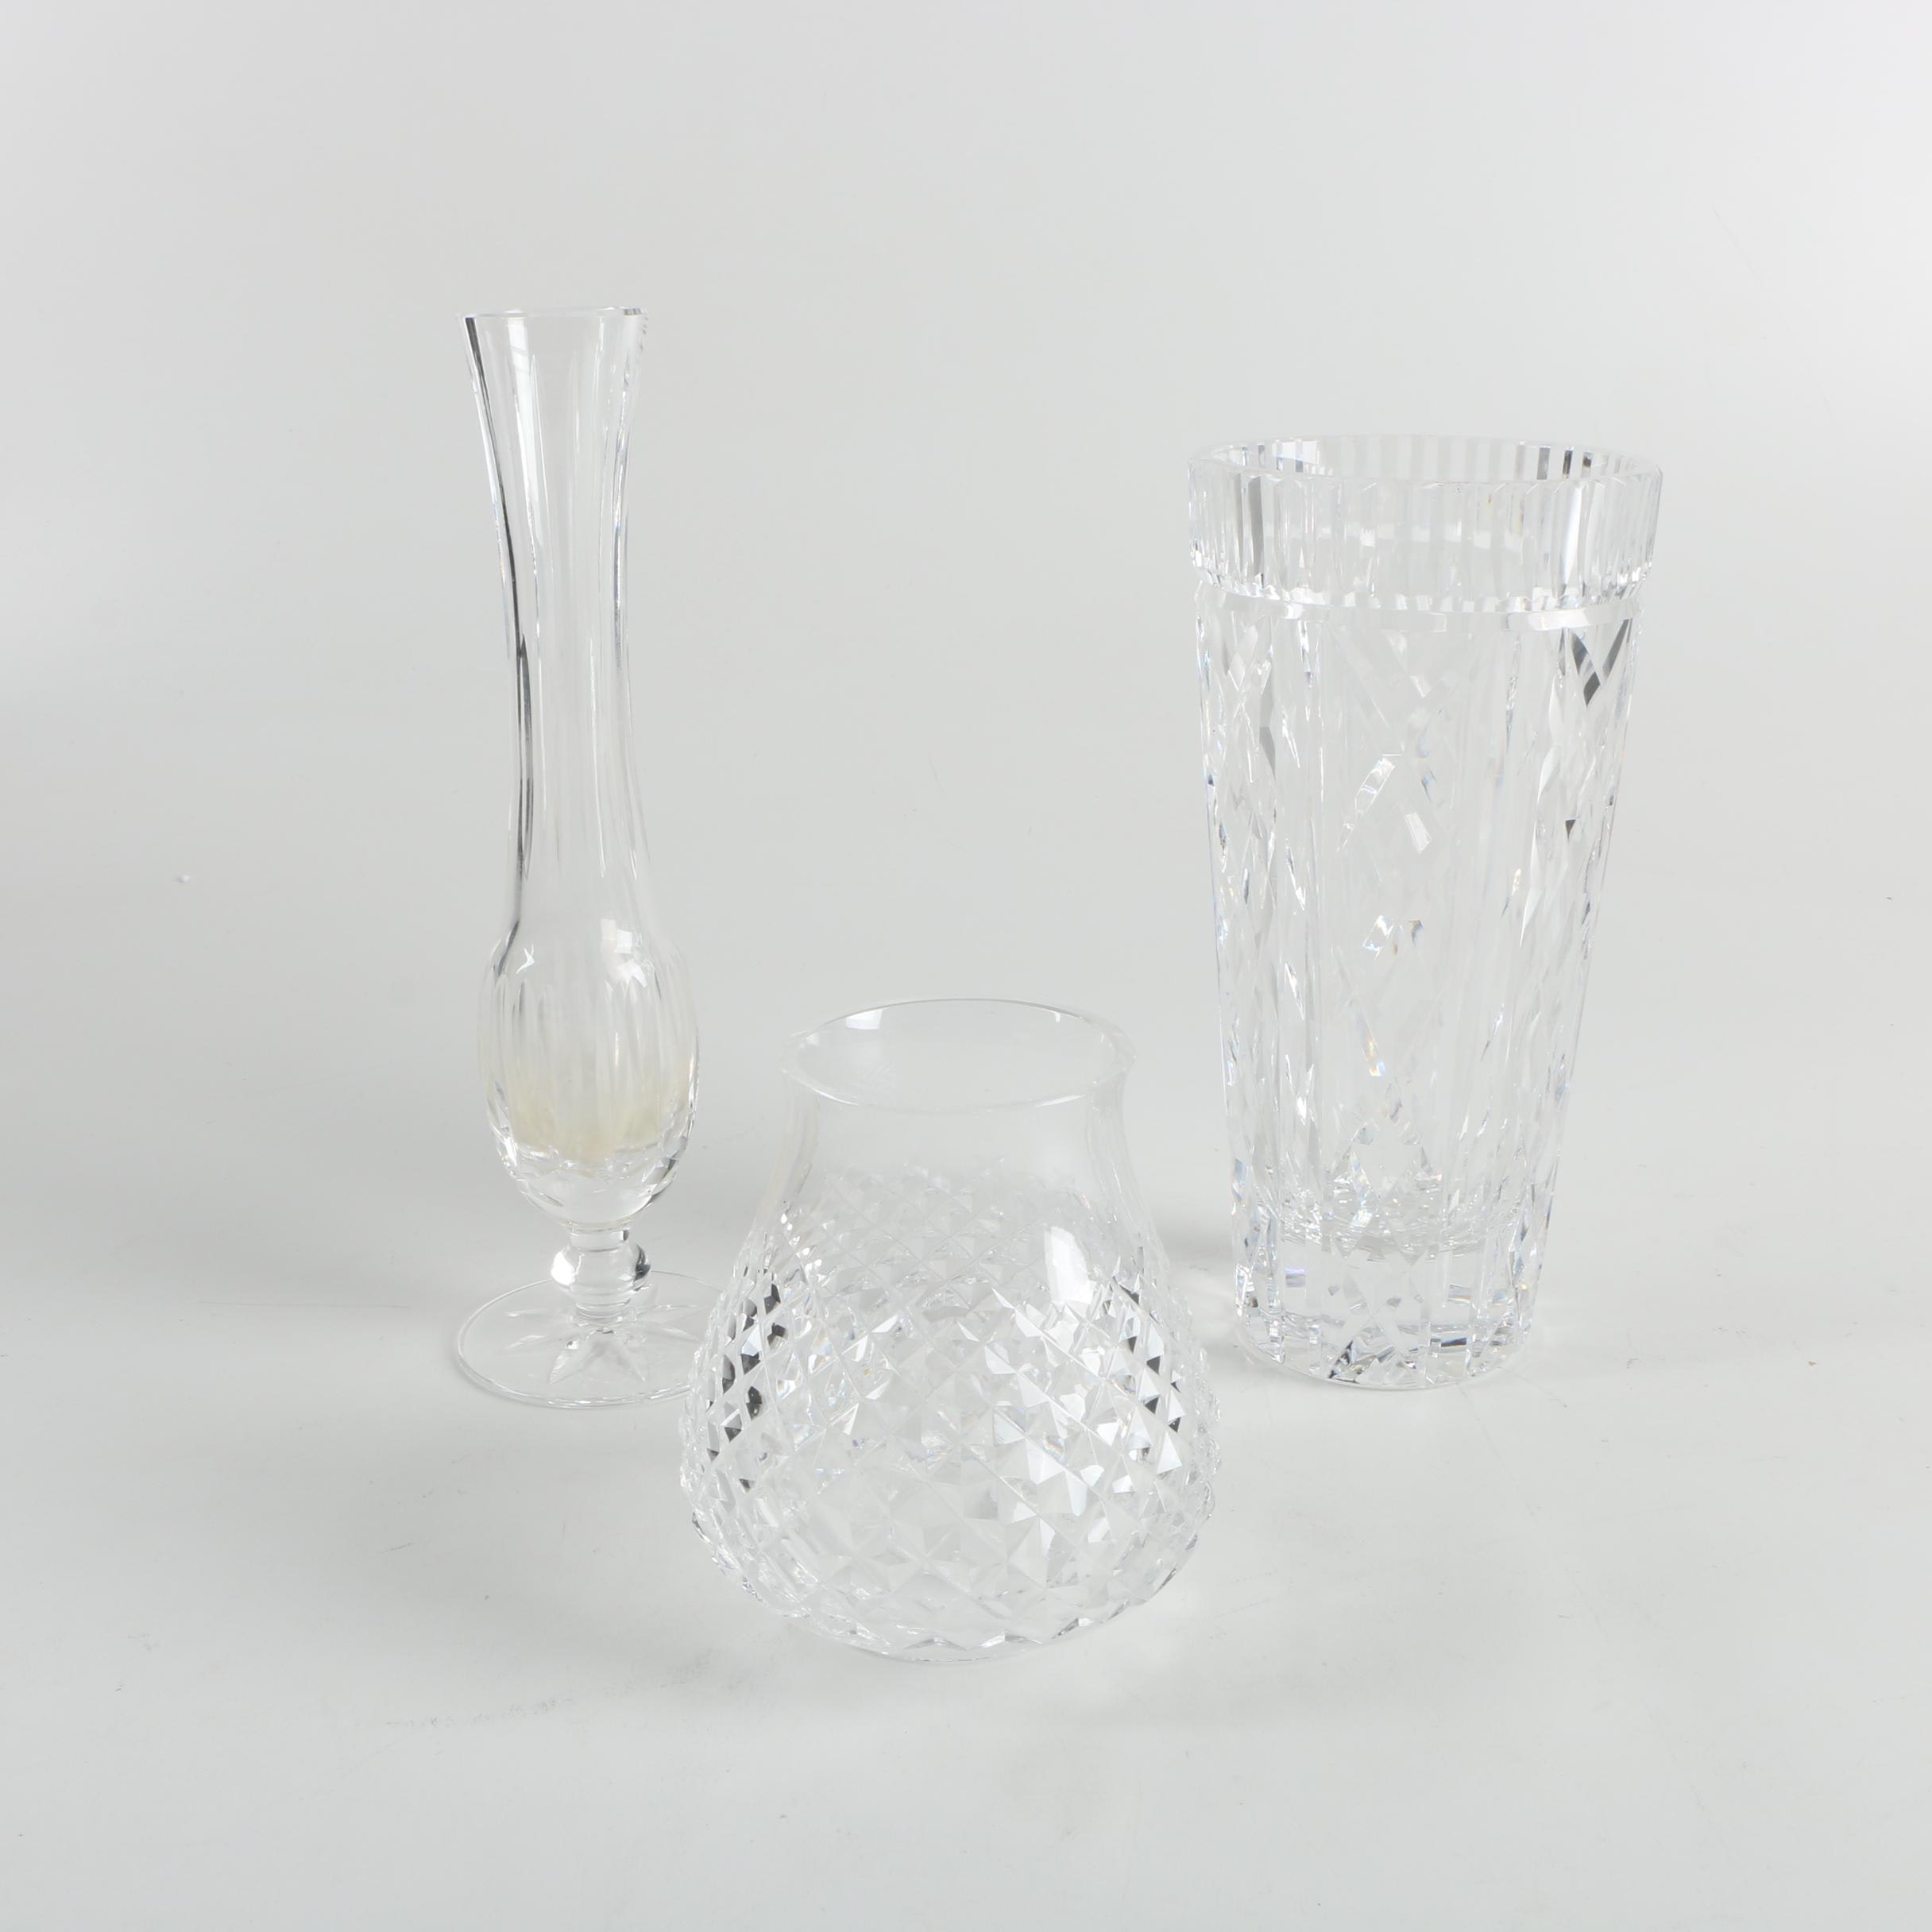 Waterford Crystal Vases with a Hurricane Shade